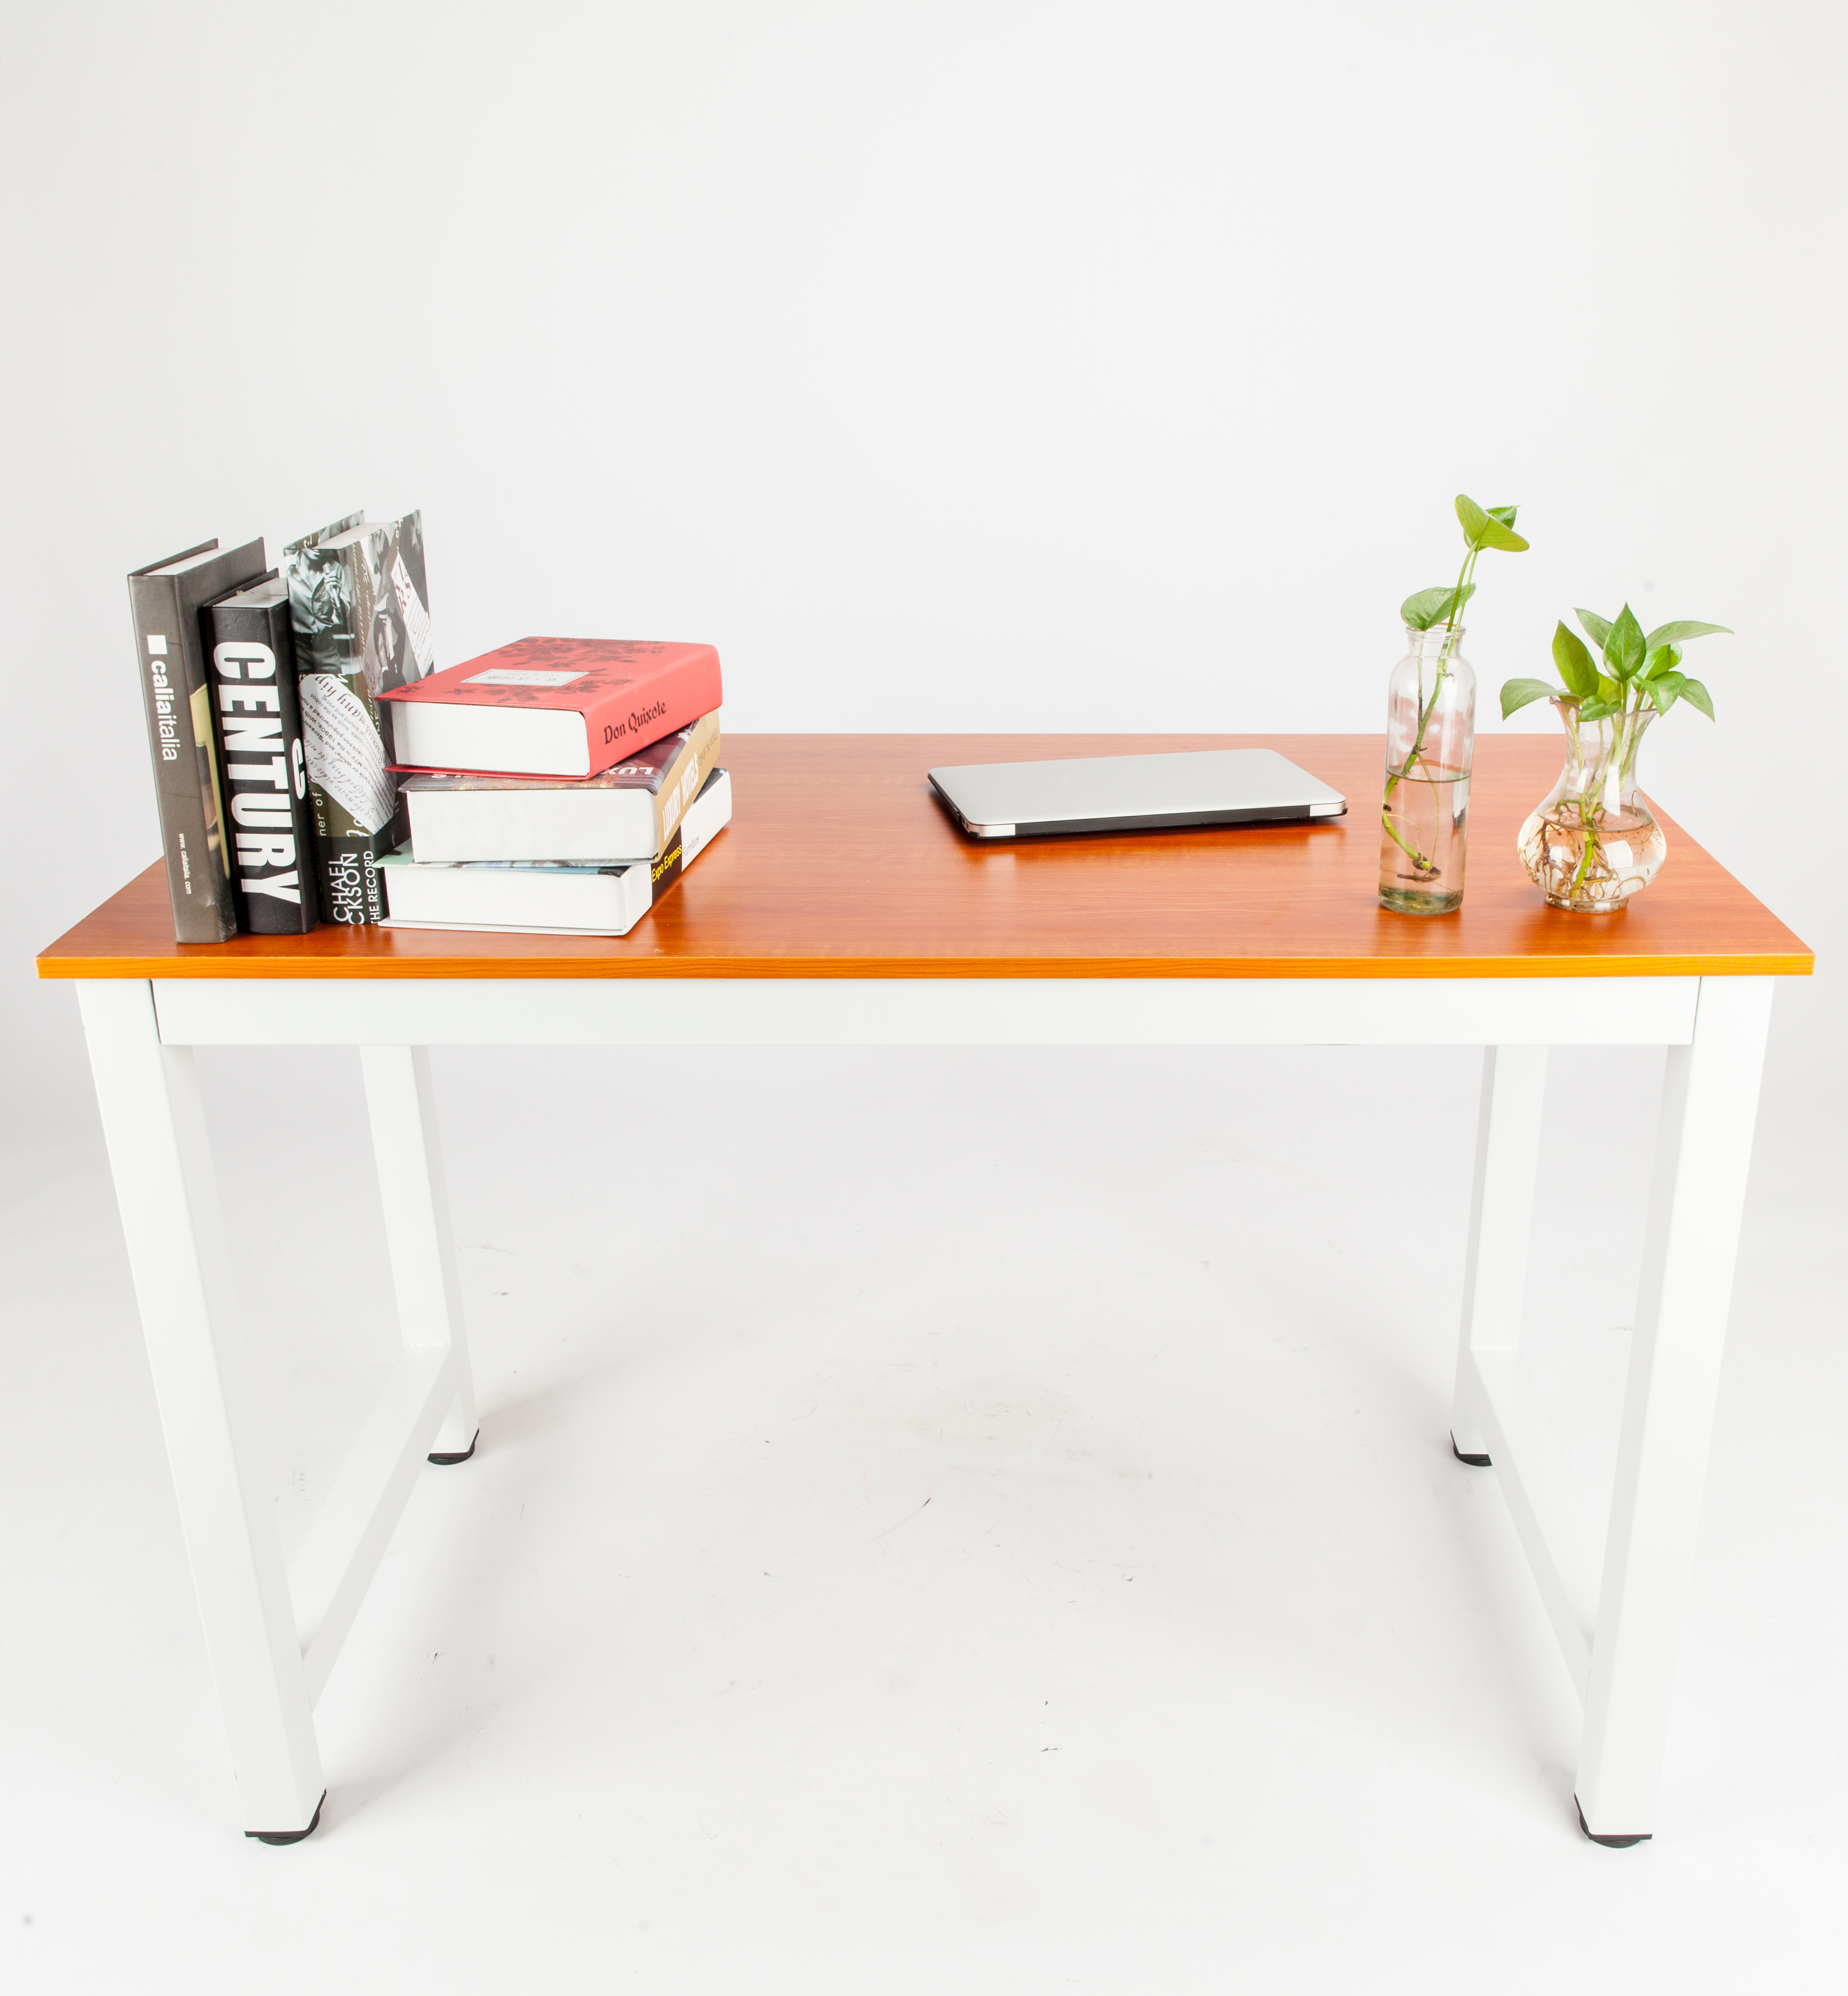 Bed Tray Tables : Target